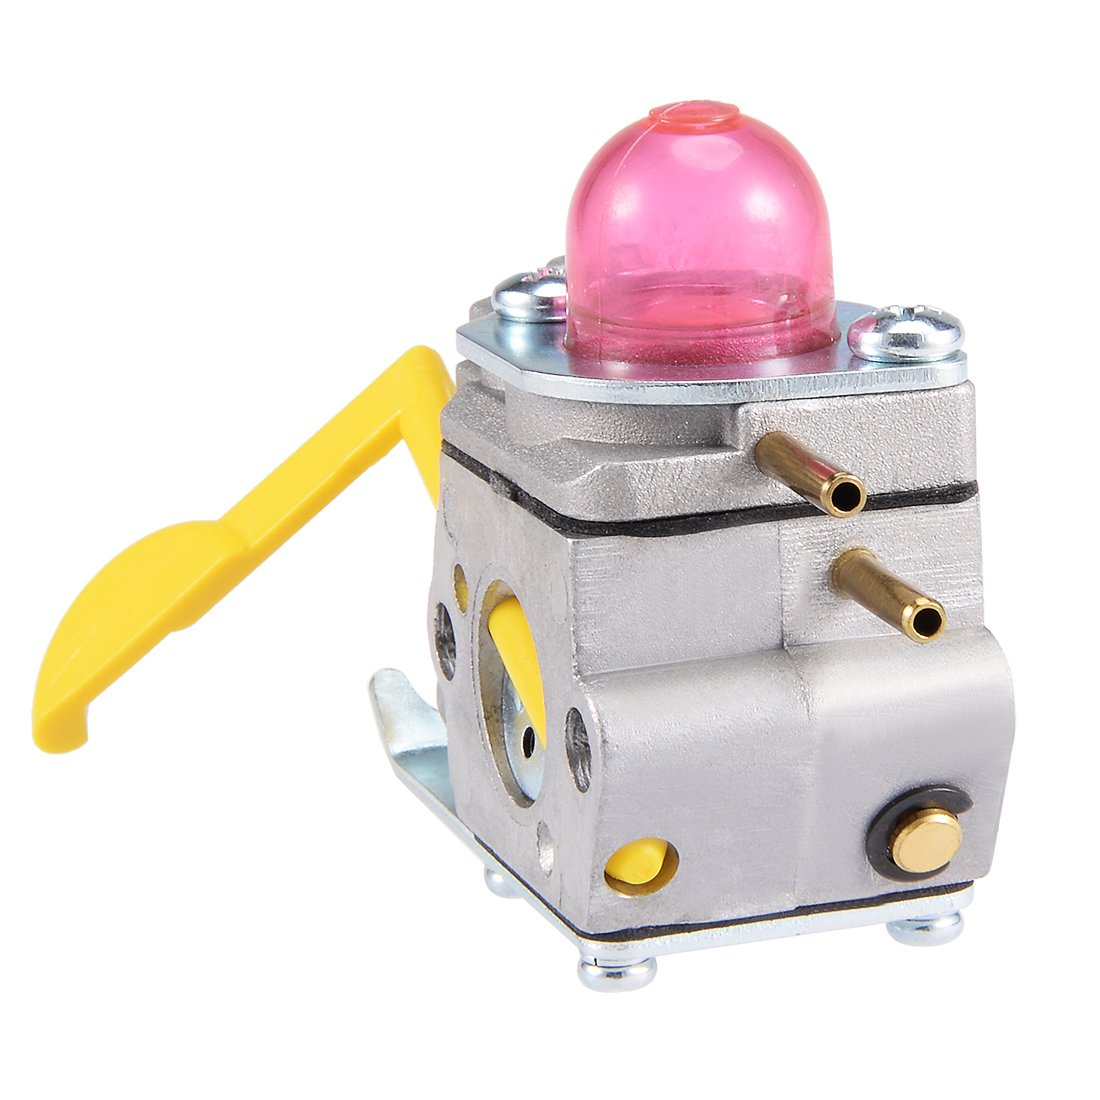 uxcell New Carburetor Carb for Poulan Weedeater String Trimmer ...